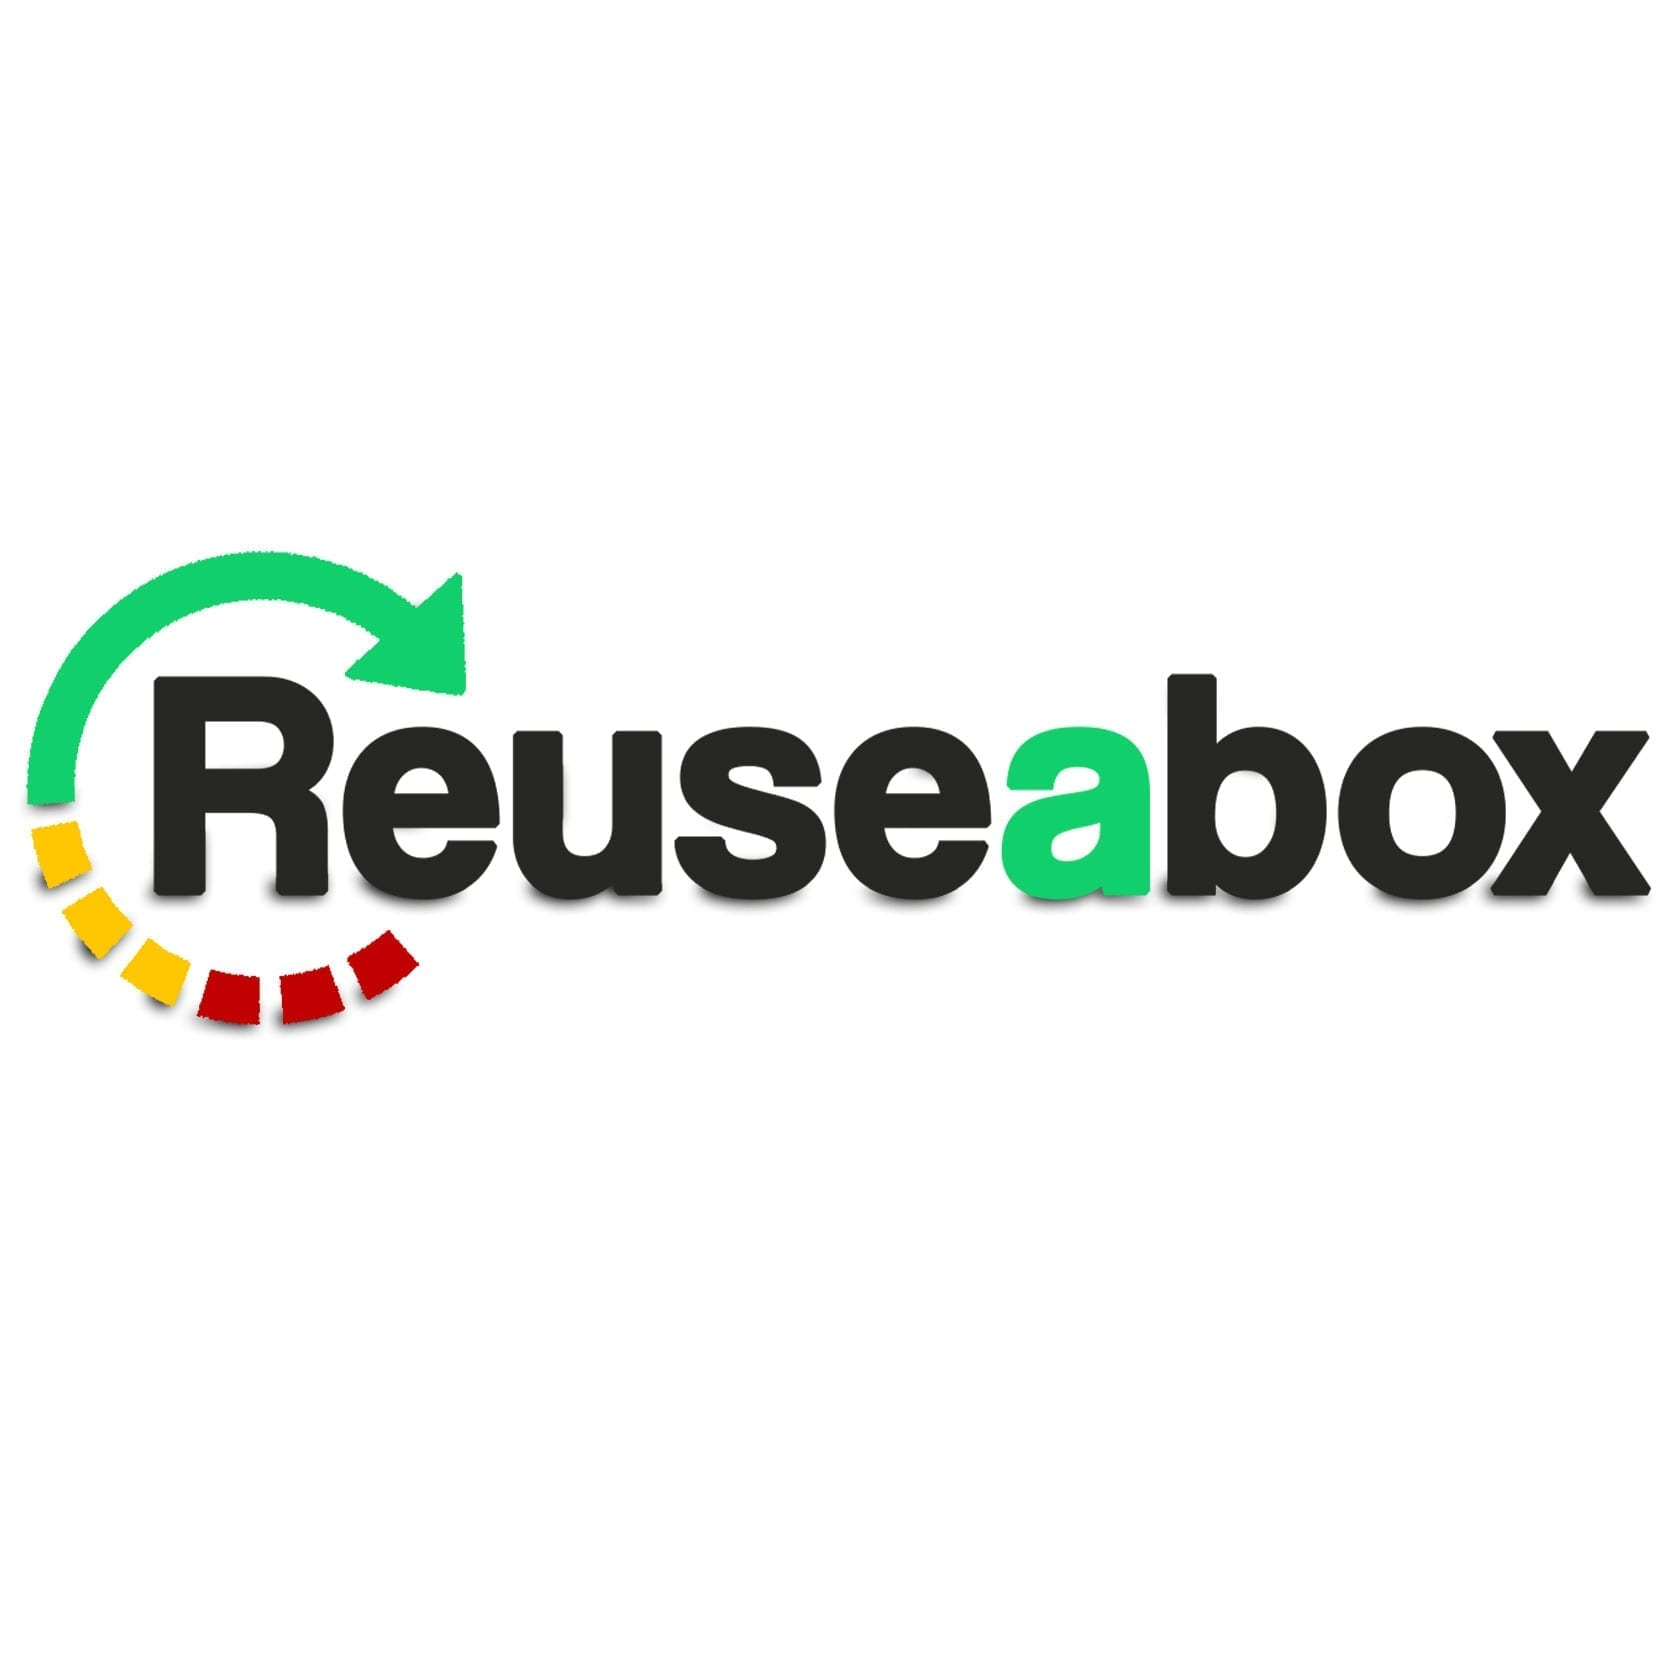 Welcome to Reuseabox